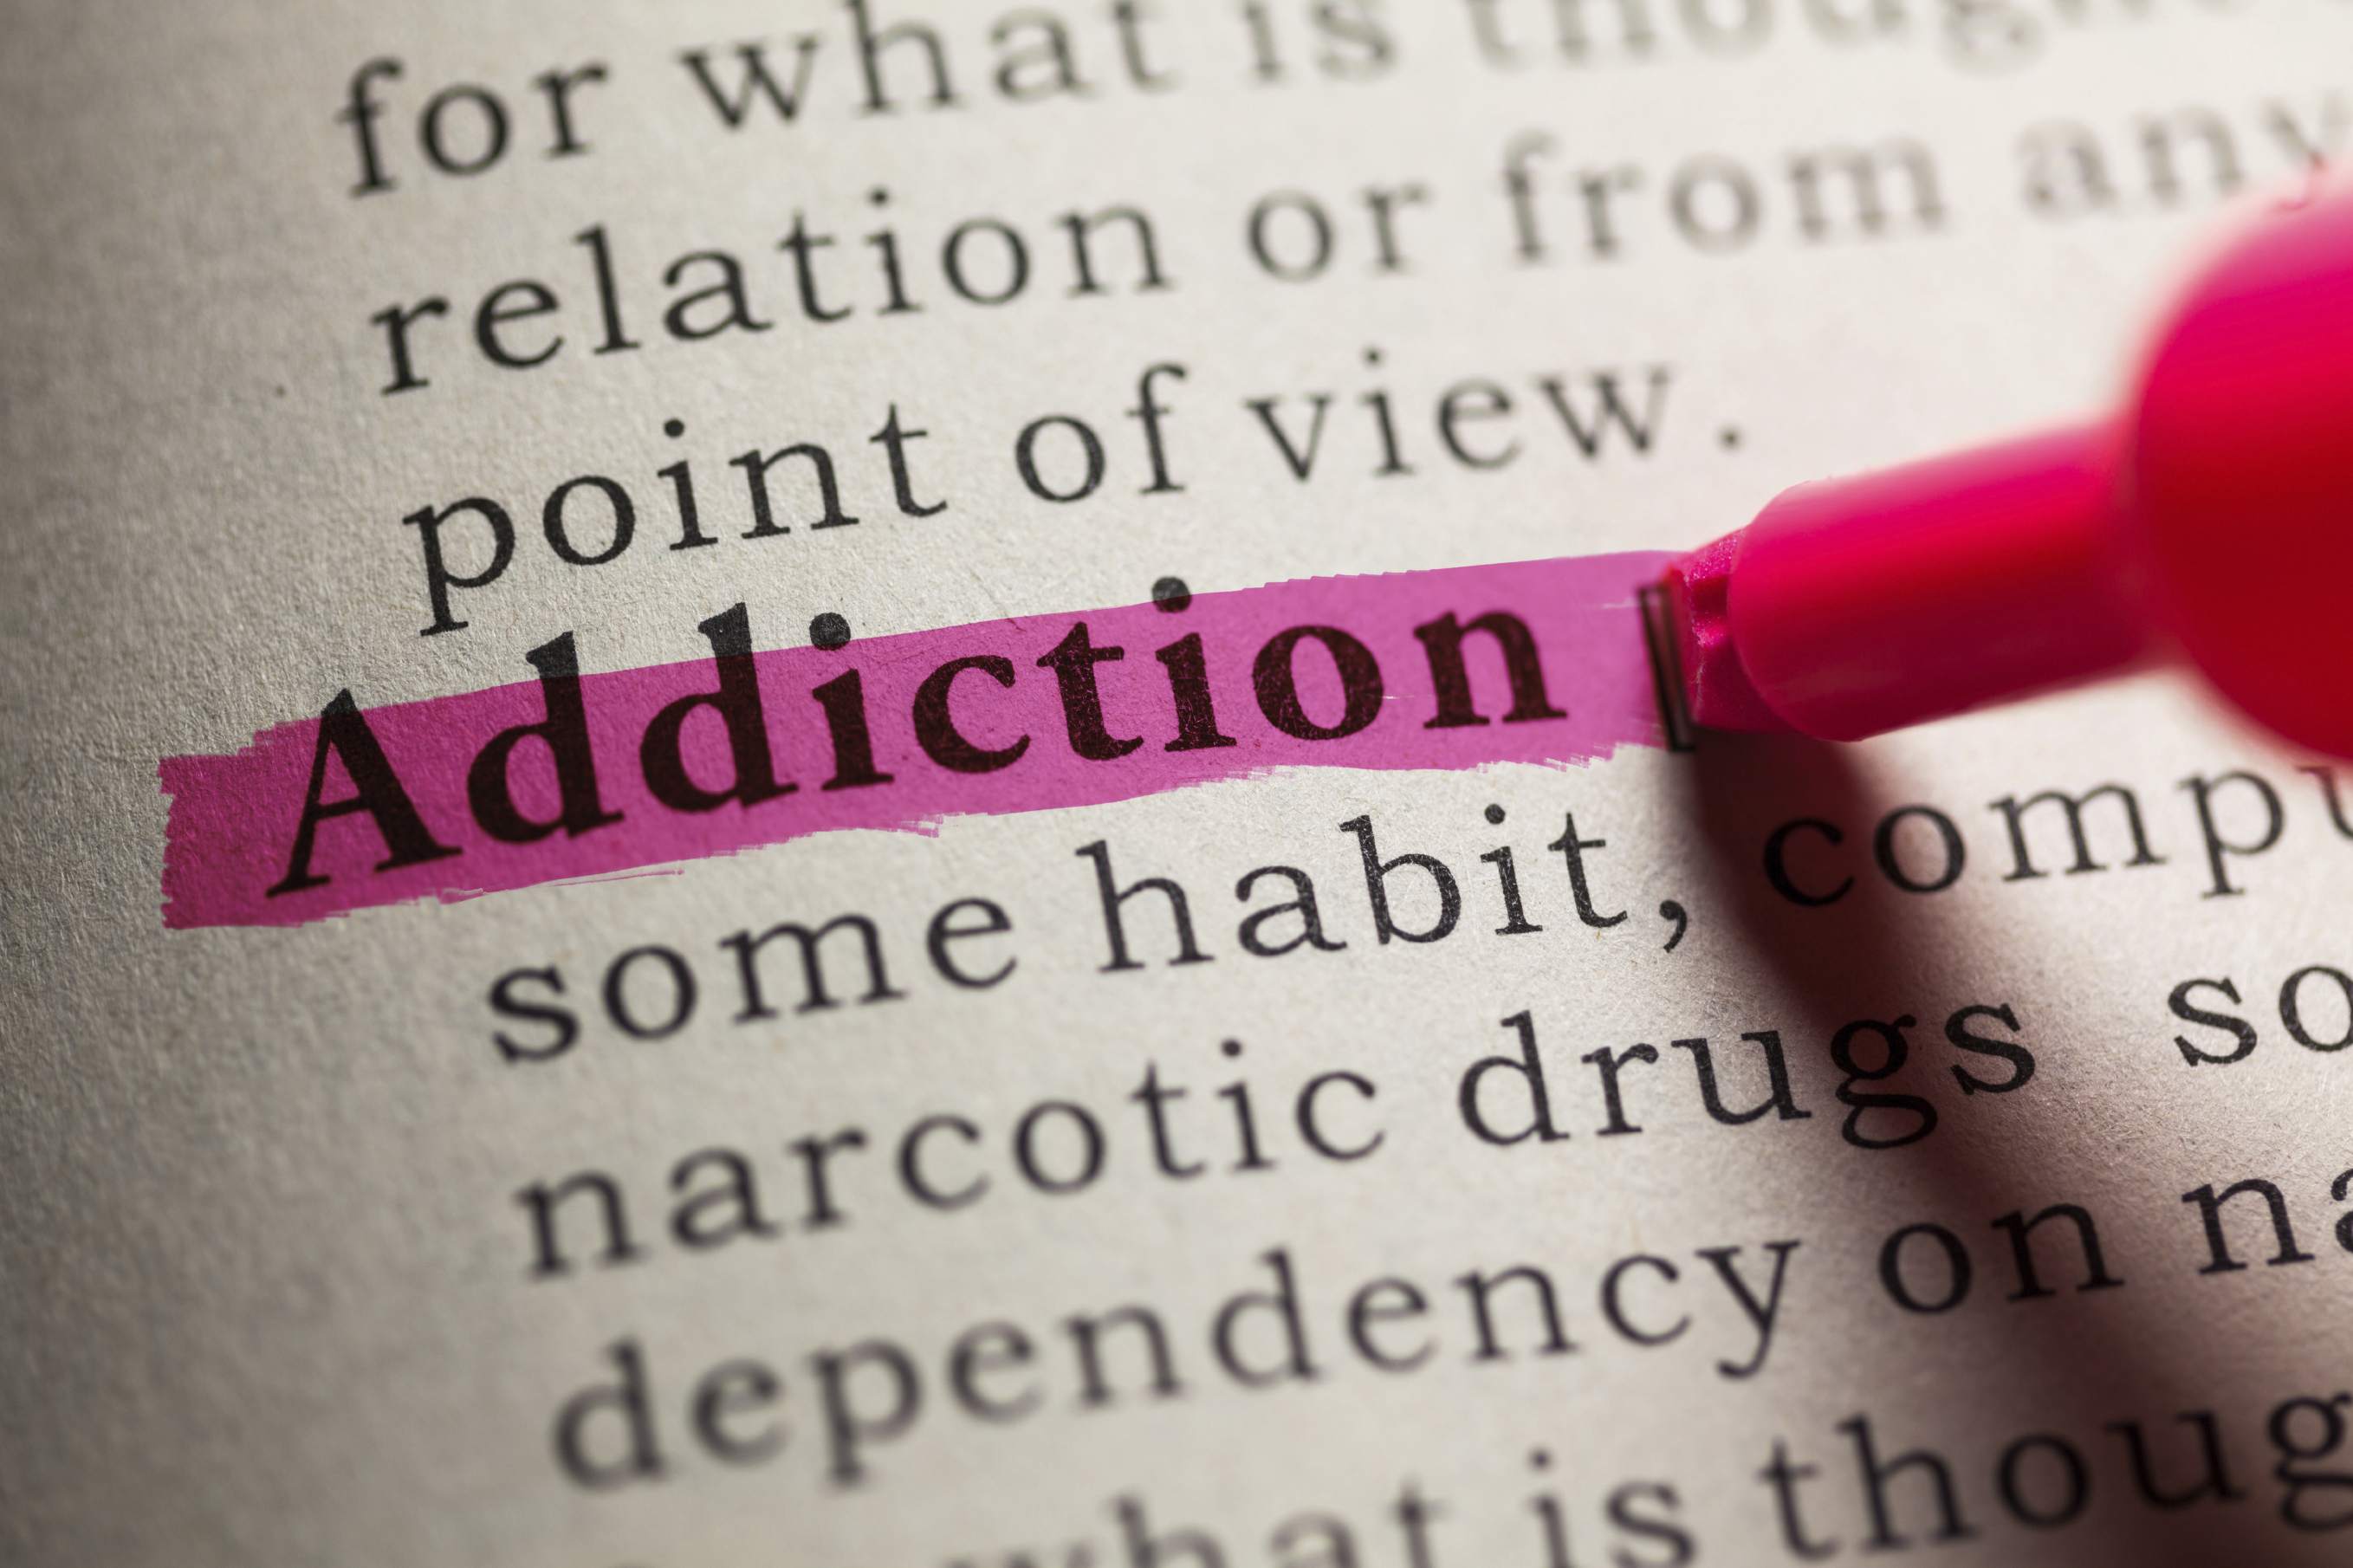 addiction workshop